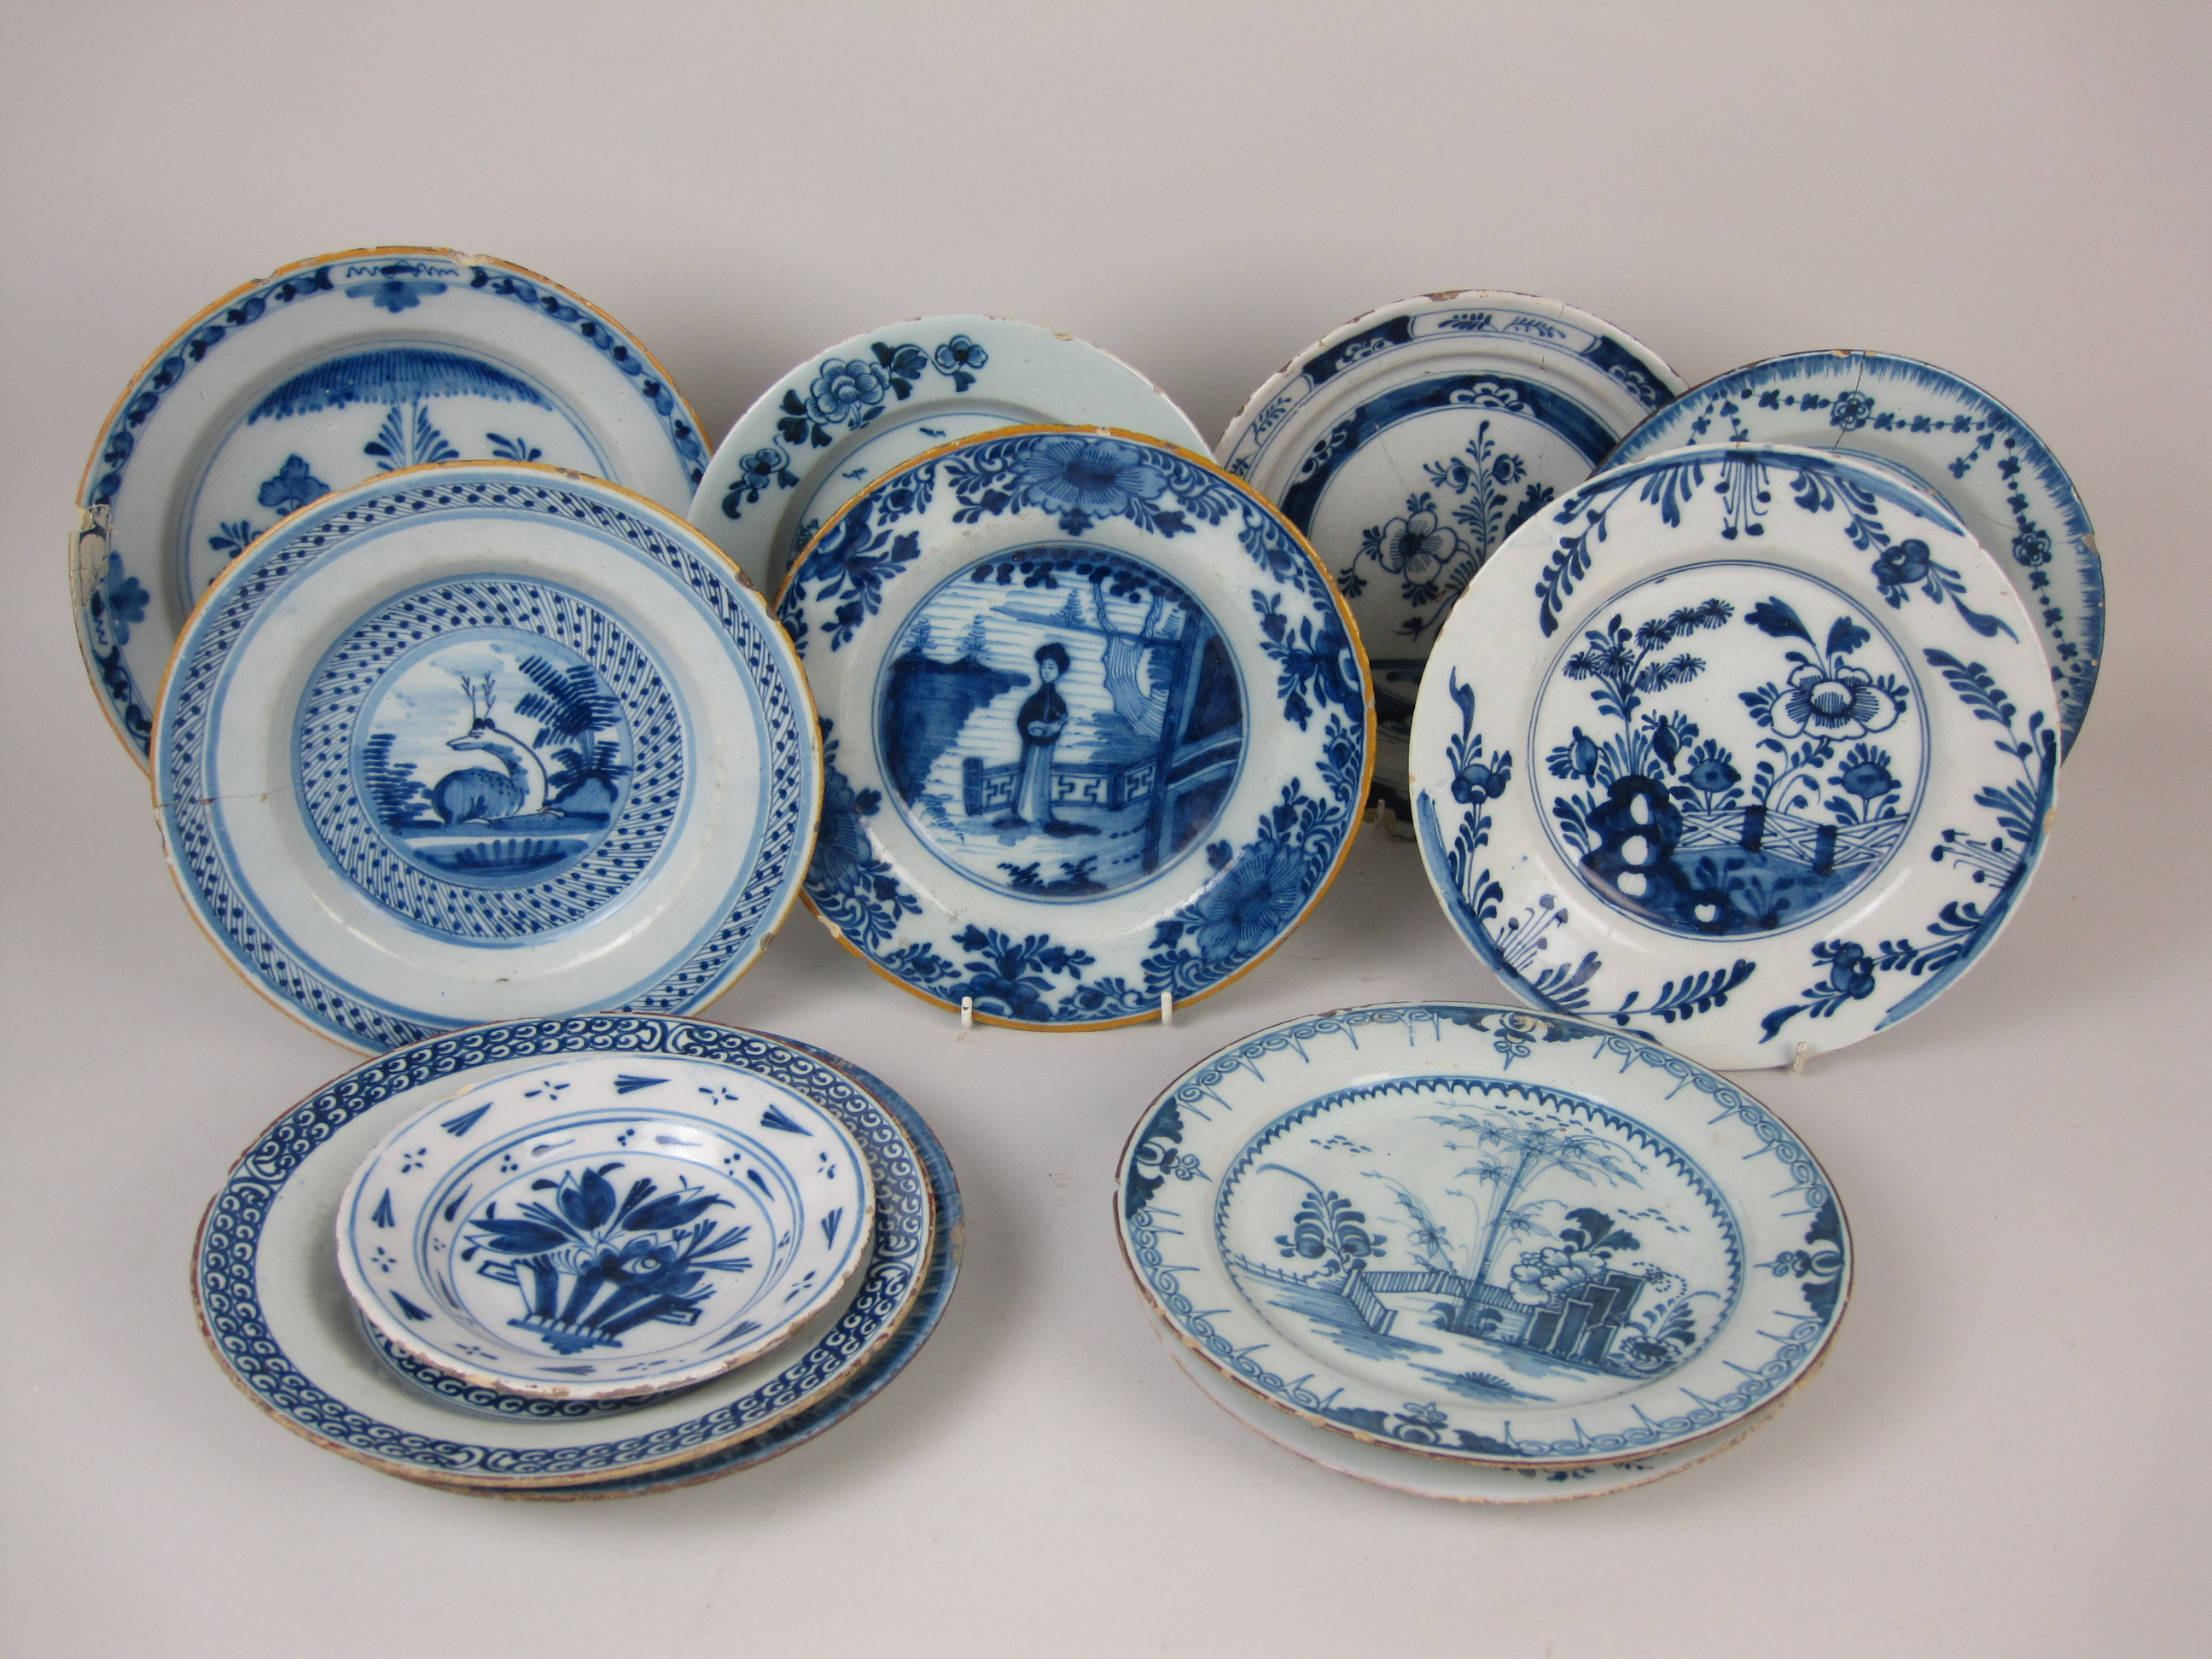 A Collection Of Twelve Delft Small Blue And White Plates Painted